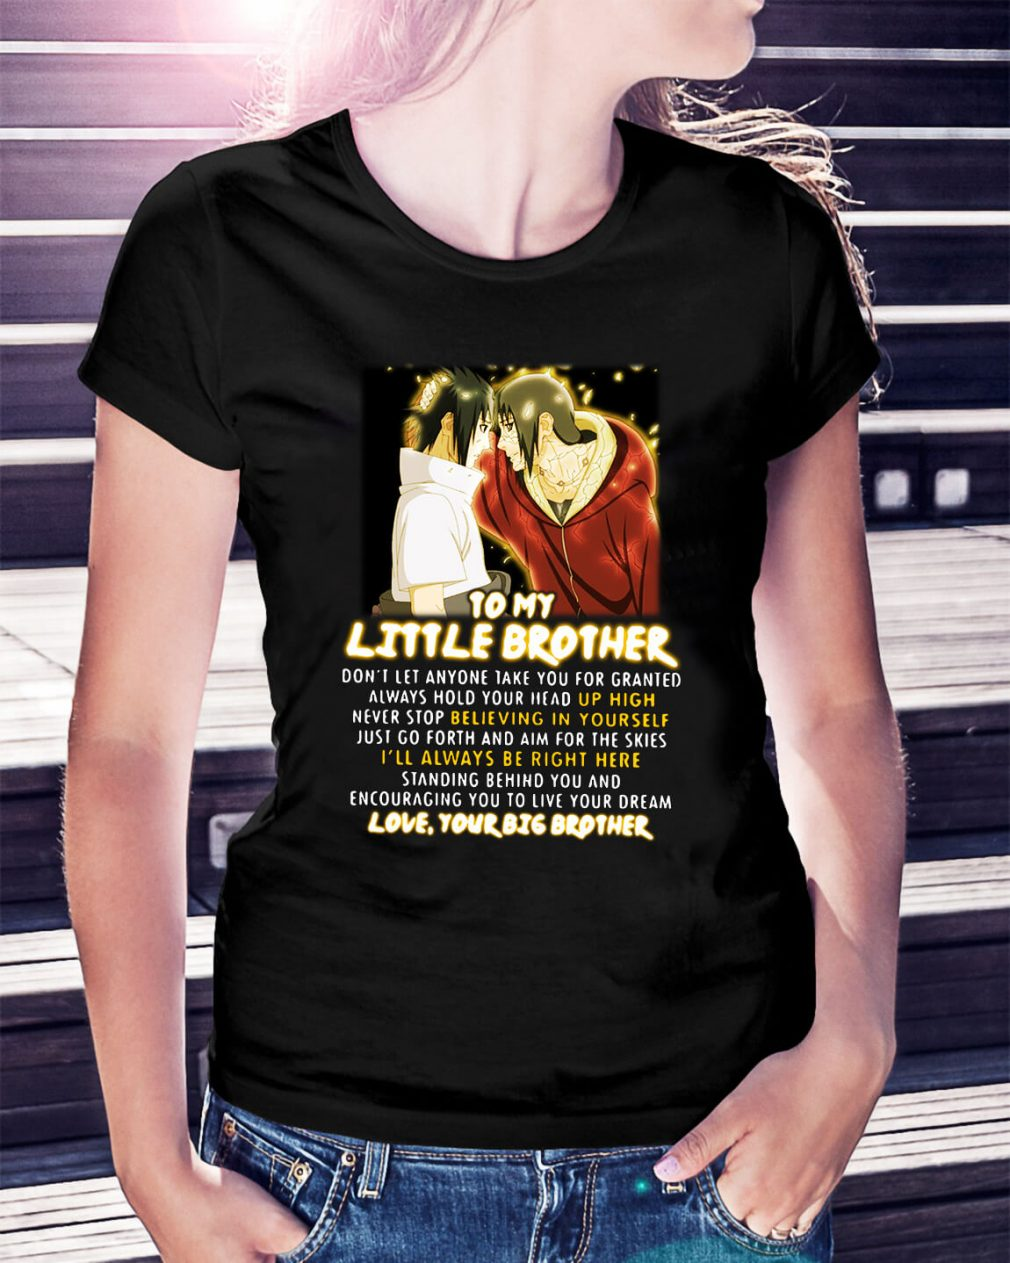 Naruto to my little brother don't let anyone take you for granted Ladies Tee